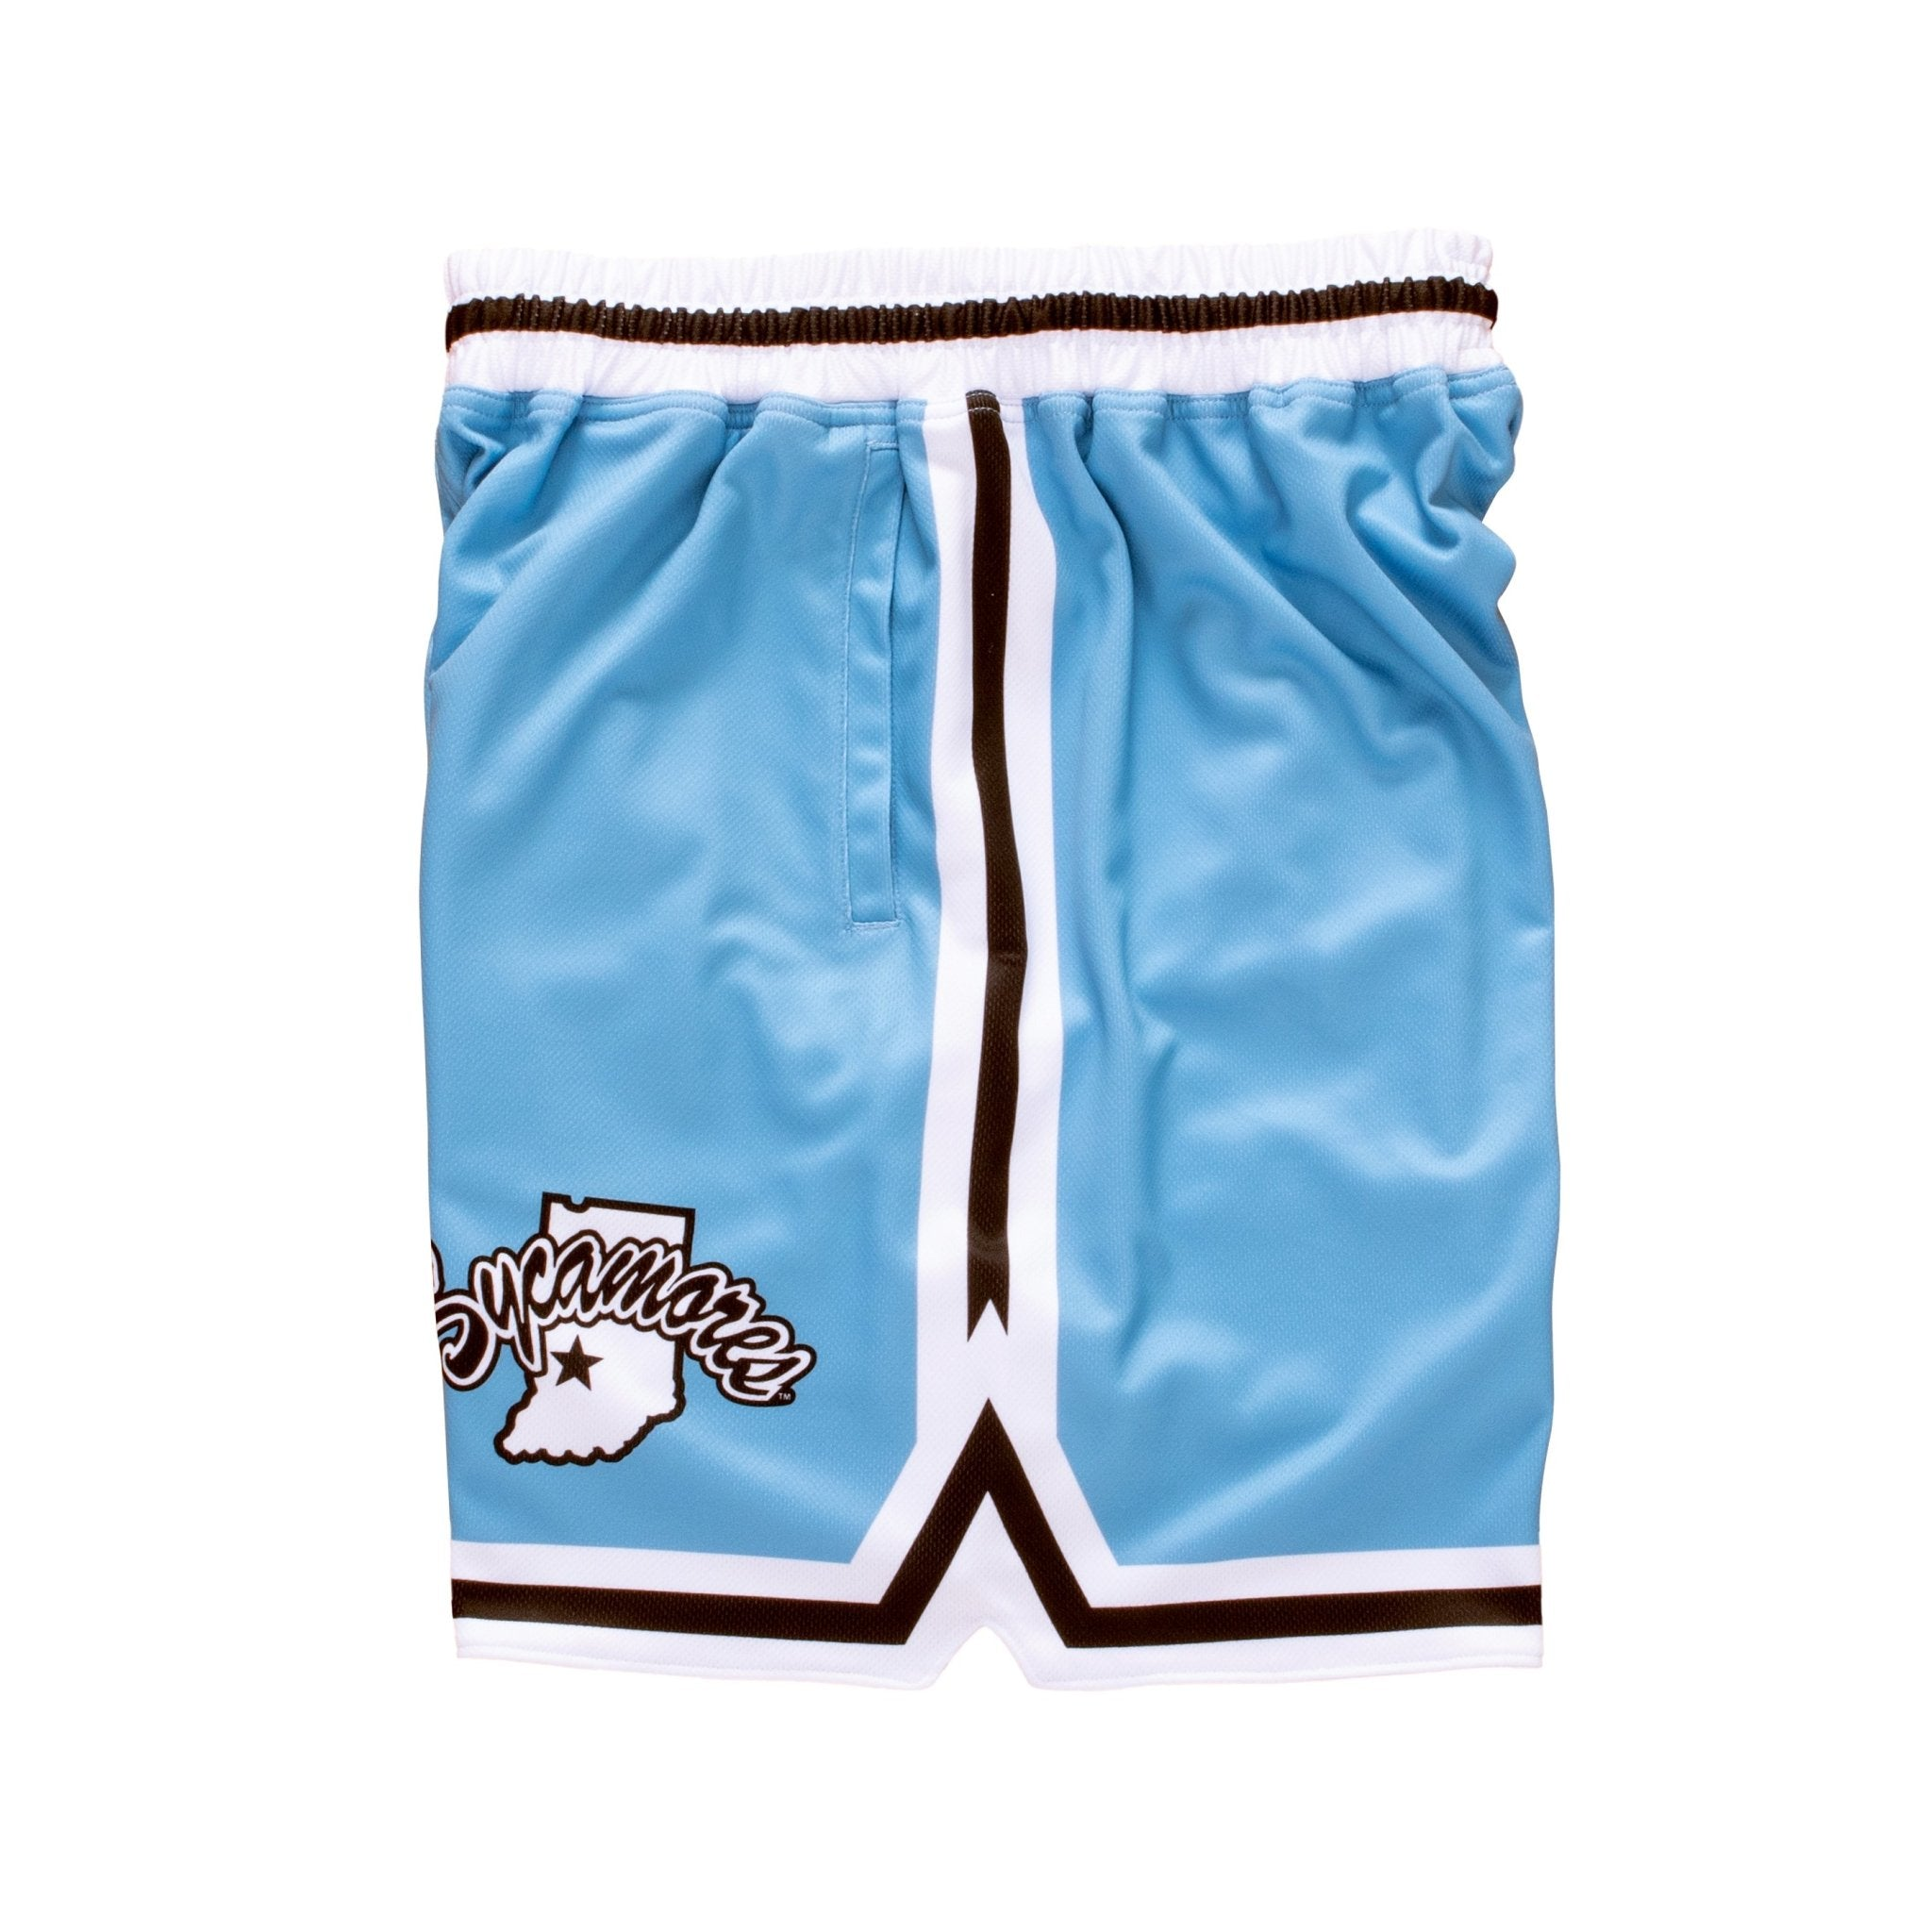 Indiana State 1978-1979 Retro Shorts - SLAM